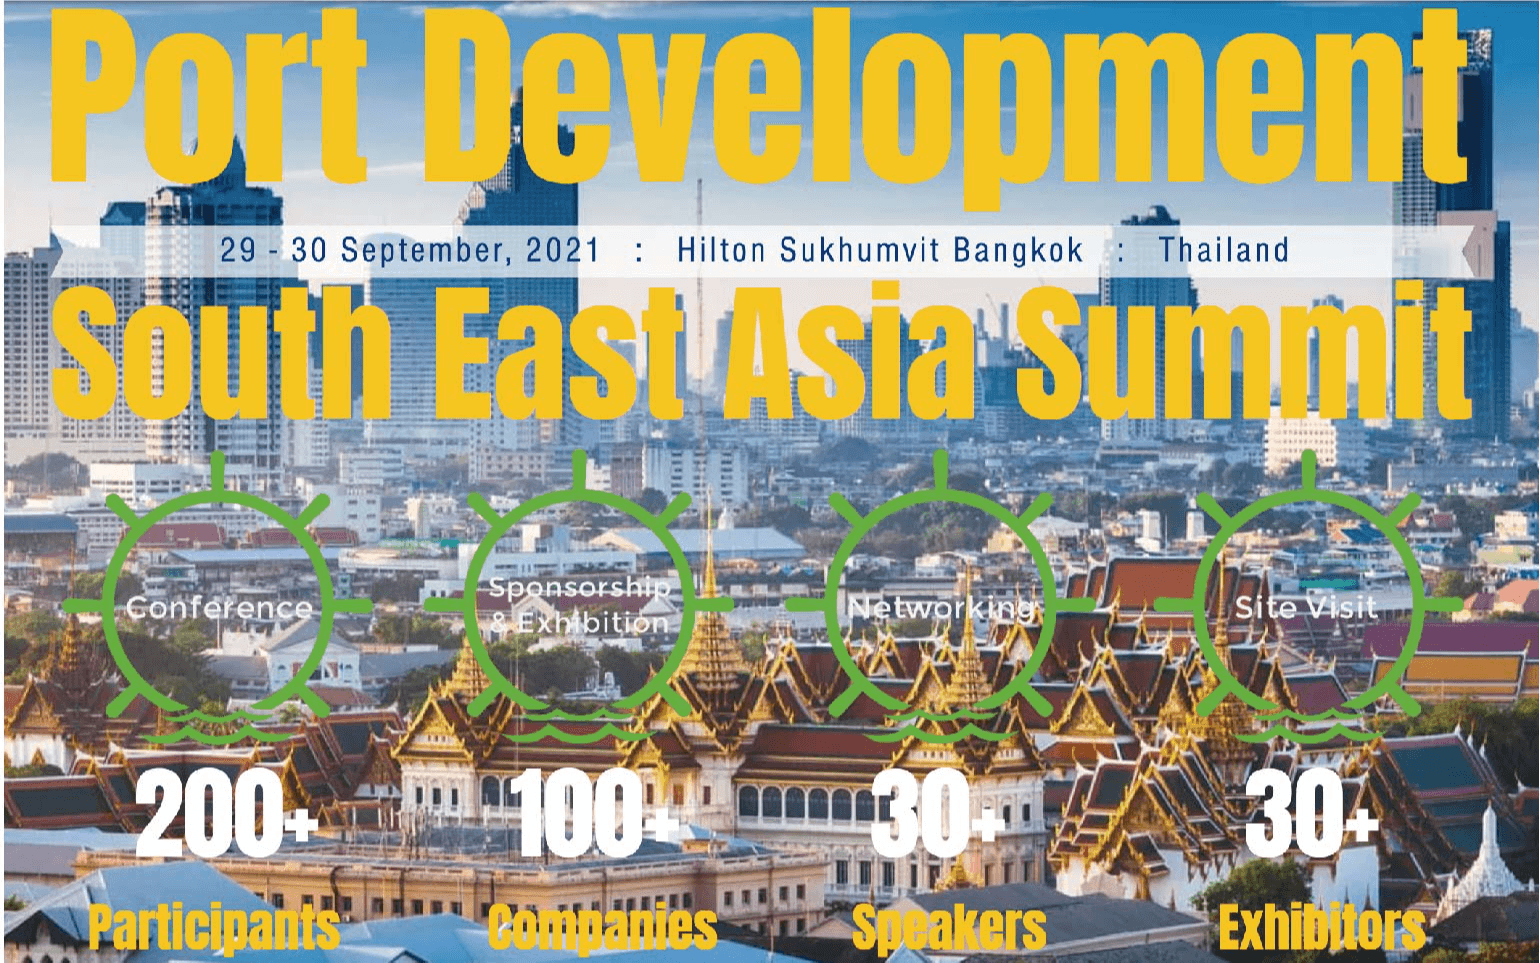 2nd Port Development South East Asia Summit 2021 第二届东南亚港口发展大会